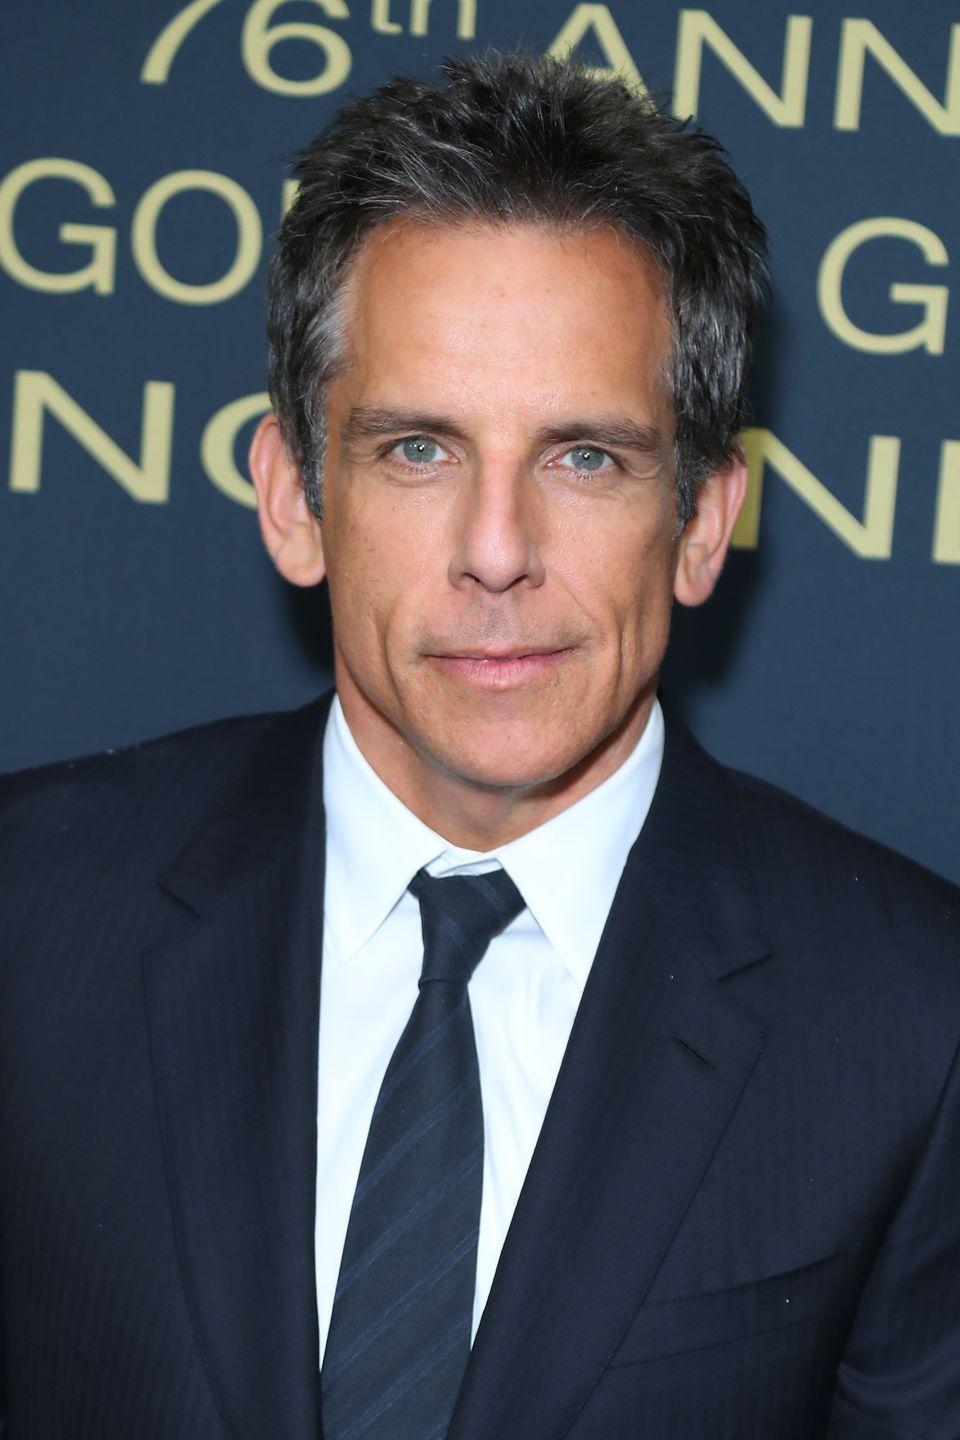 <p>Nearly a decade would pass before Stiller gained widespread fame with his starring role in <em>There's </em><em>Something About Mary</em>. Subsequent hits, not least among them the <em>Meet the Parents</em> and <em>Night at the Museum</em> franchises, made him a household name. </p>